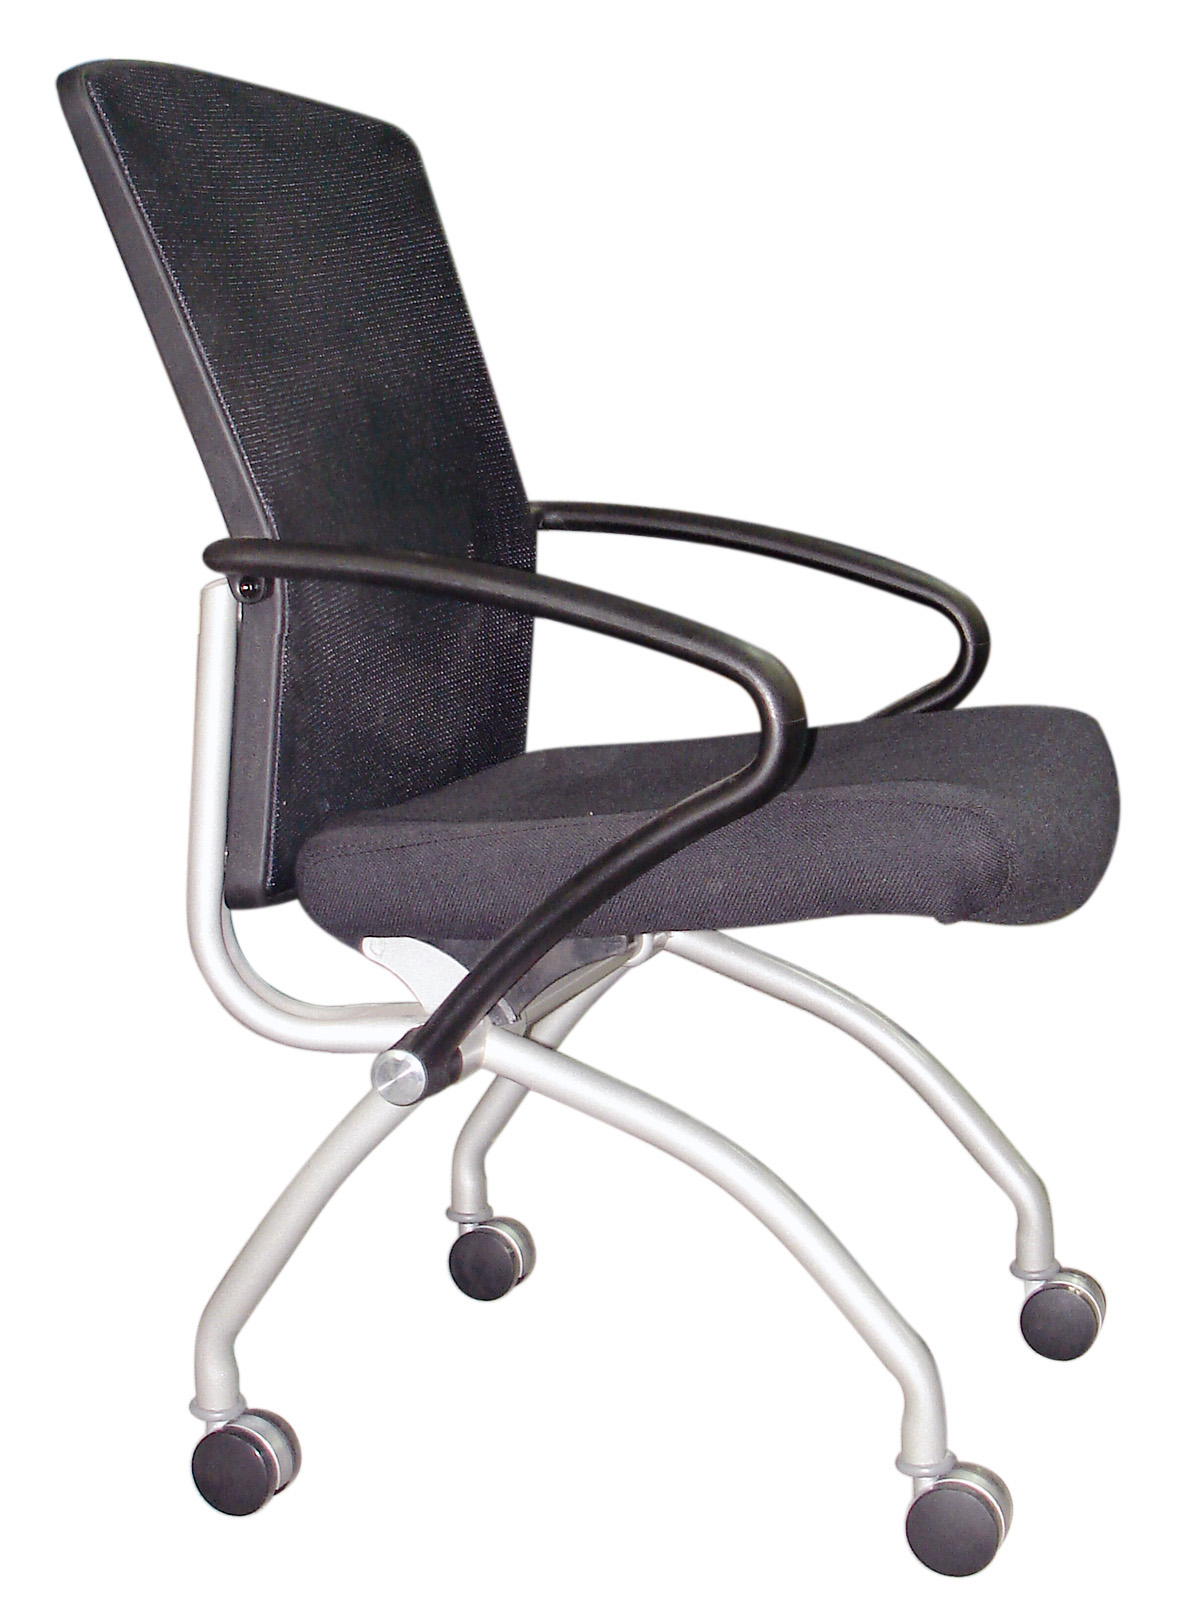 Armless Desk Chair On Casters Chairs Model : old 16 from chairs.2011airjordan.com size 1200 x 1624 jpeg 313kB